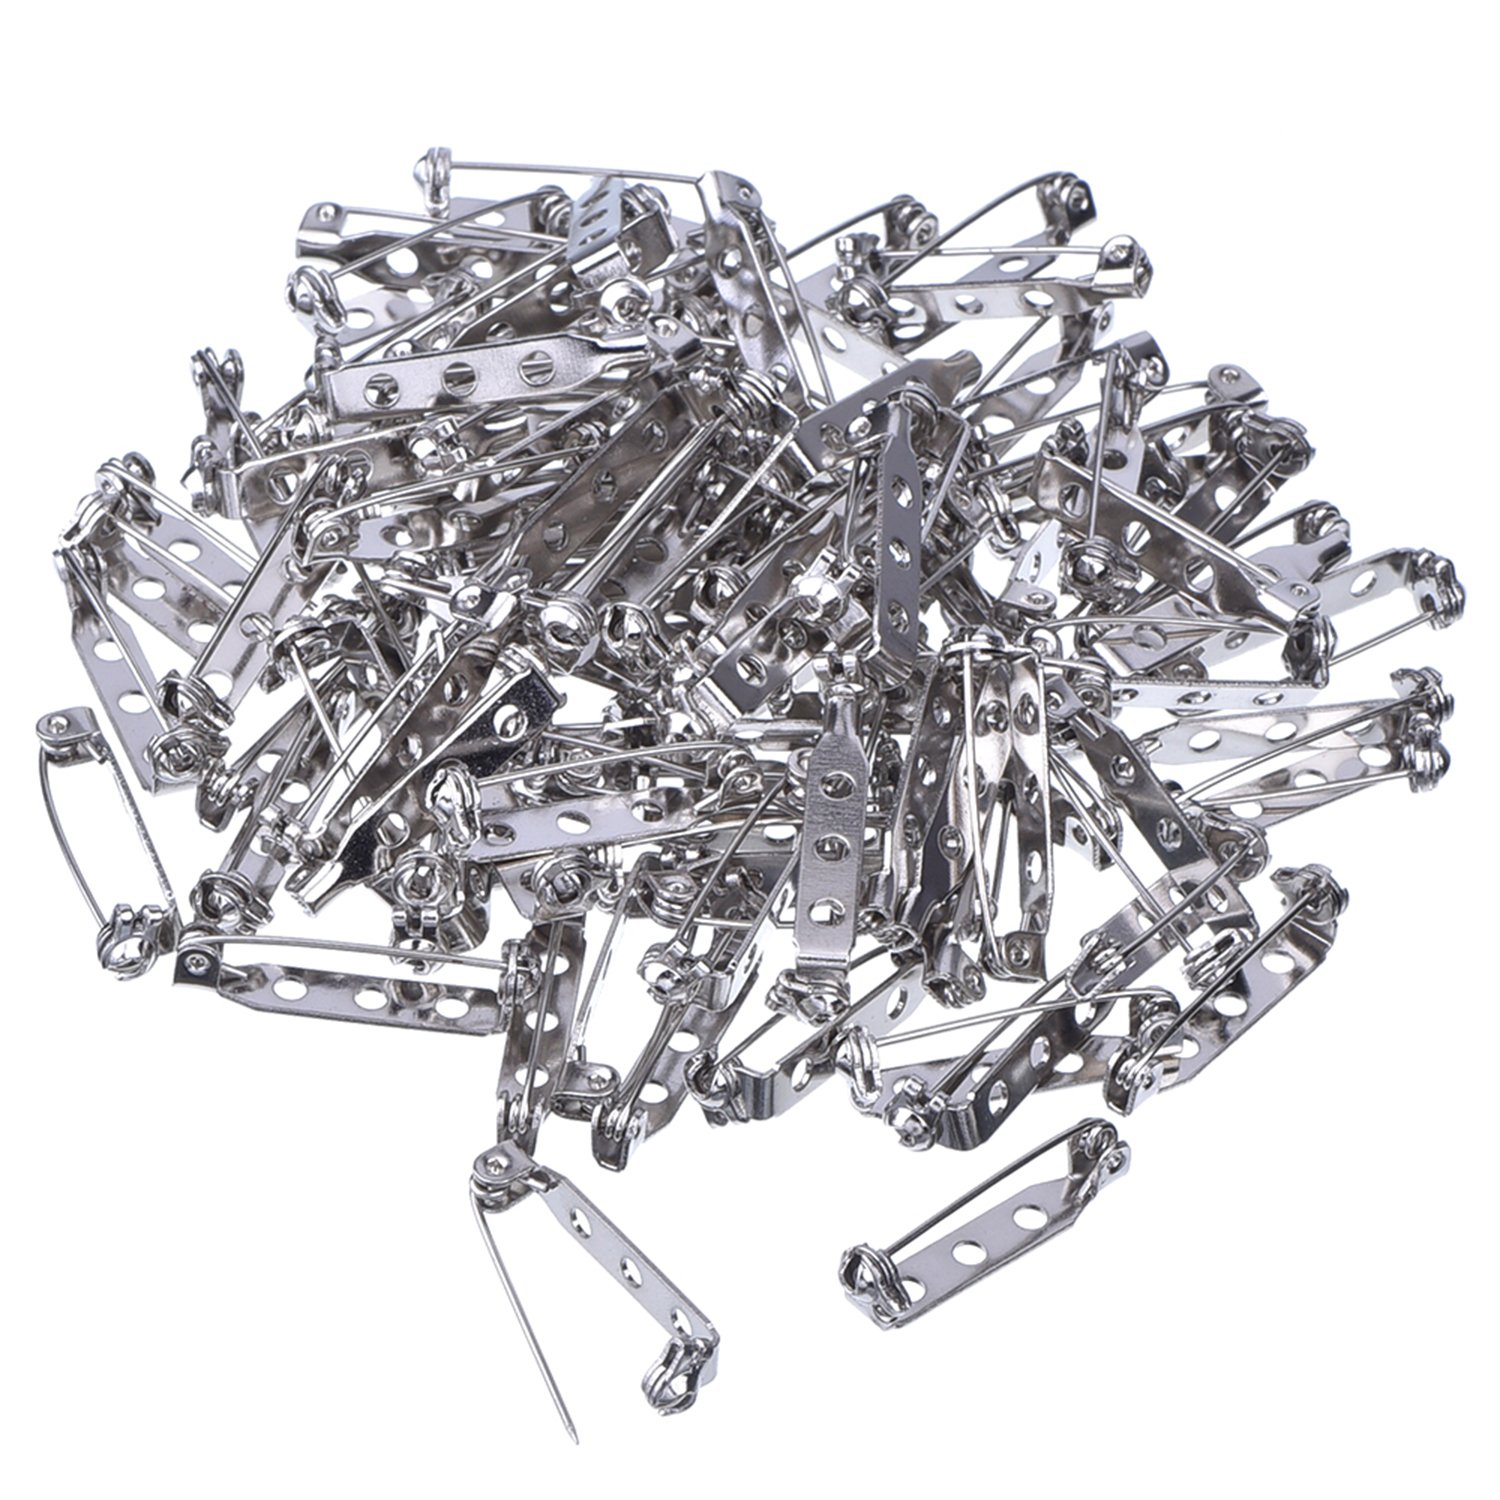 Mudder 100 Pieces Silver Tone Pin Back Clasp Brooch Name Badge Craft (1 Inch) by Mudder